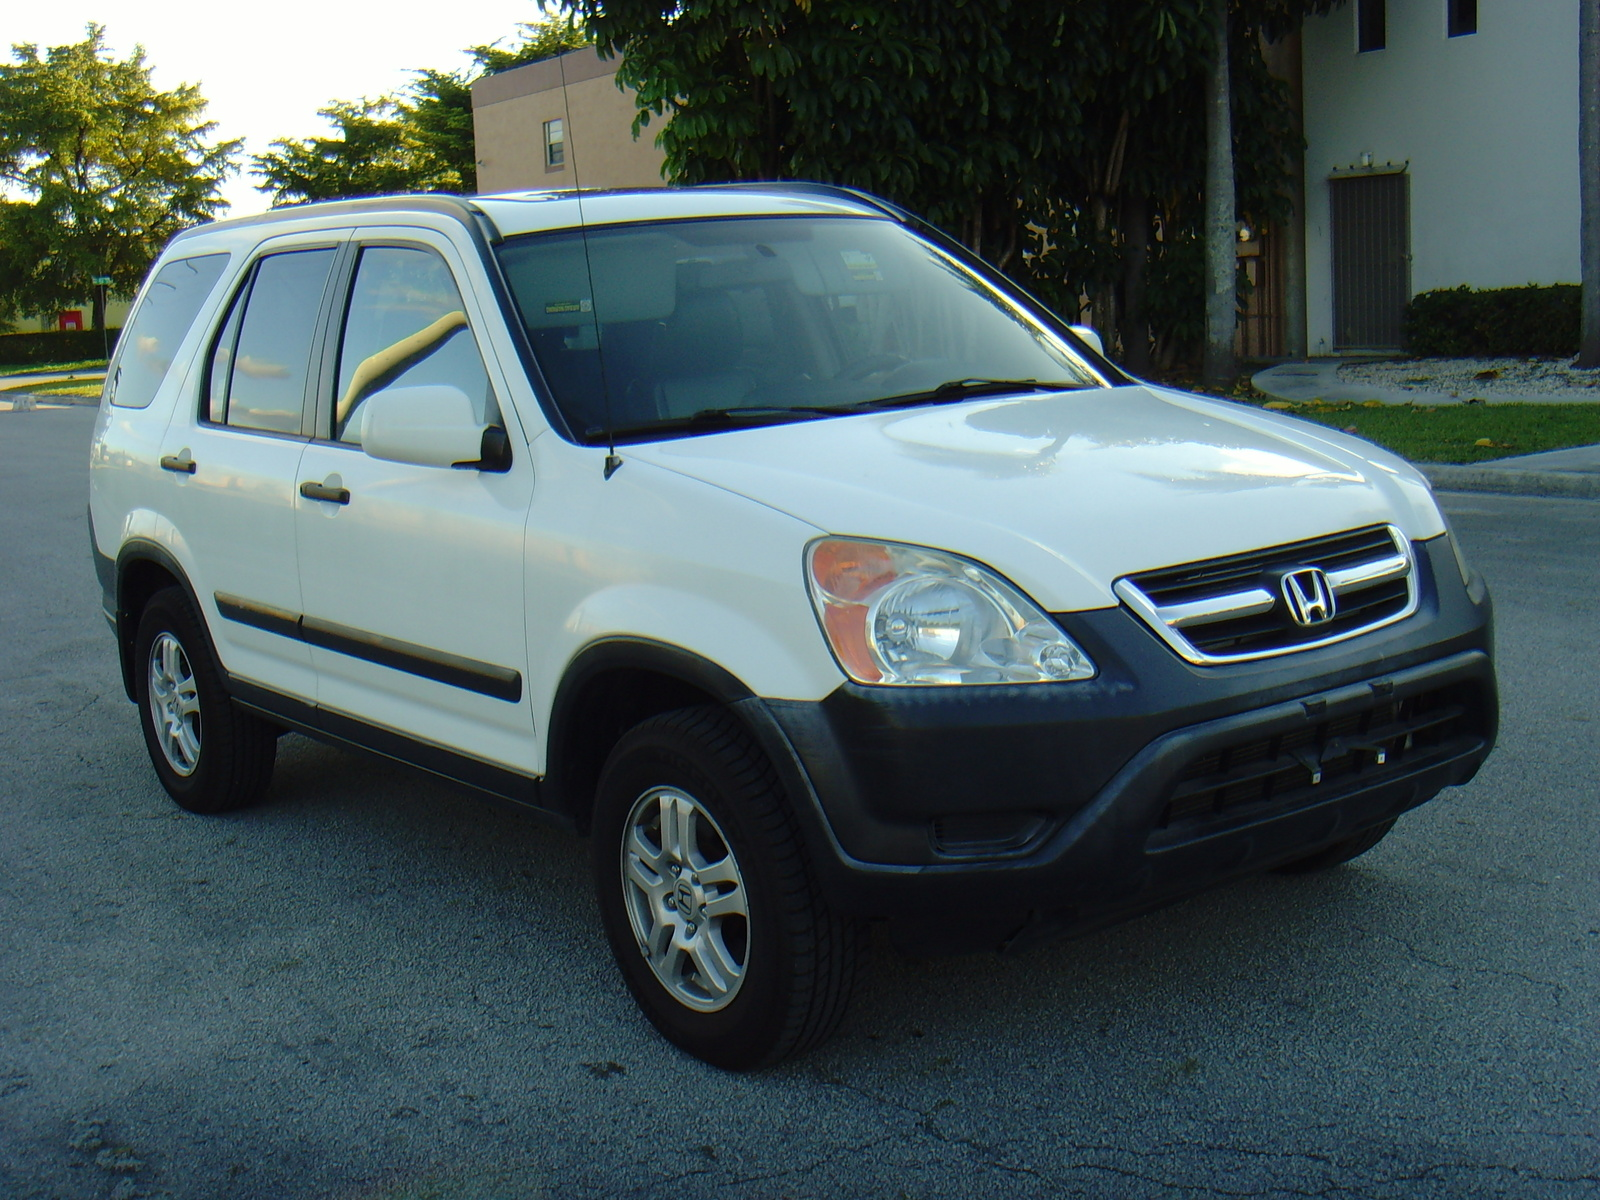 Honda CR-V 2.4 2003 photo - 4